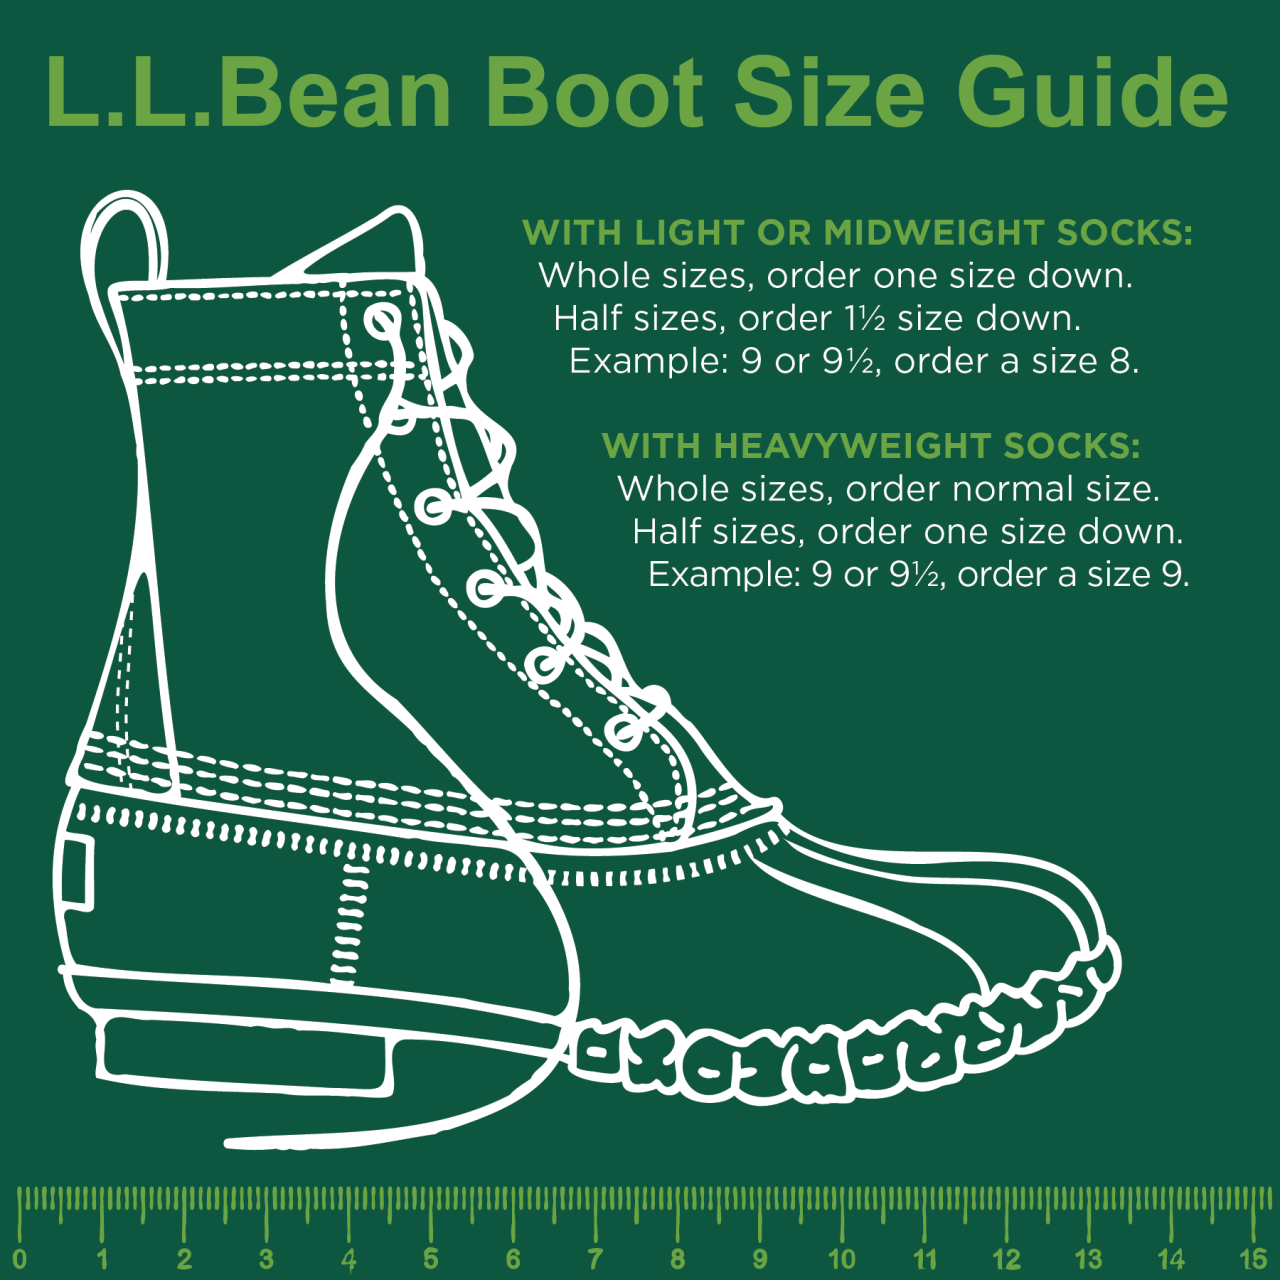 L.L.Bean Boot Sizing Guide